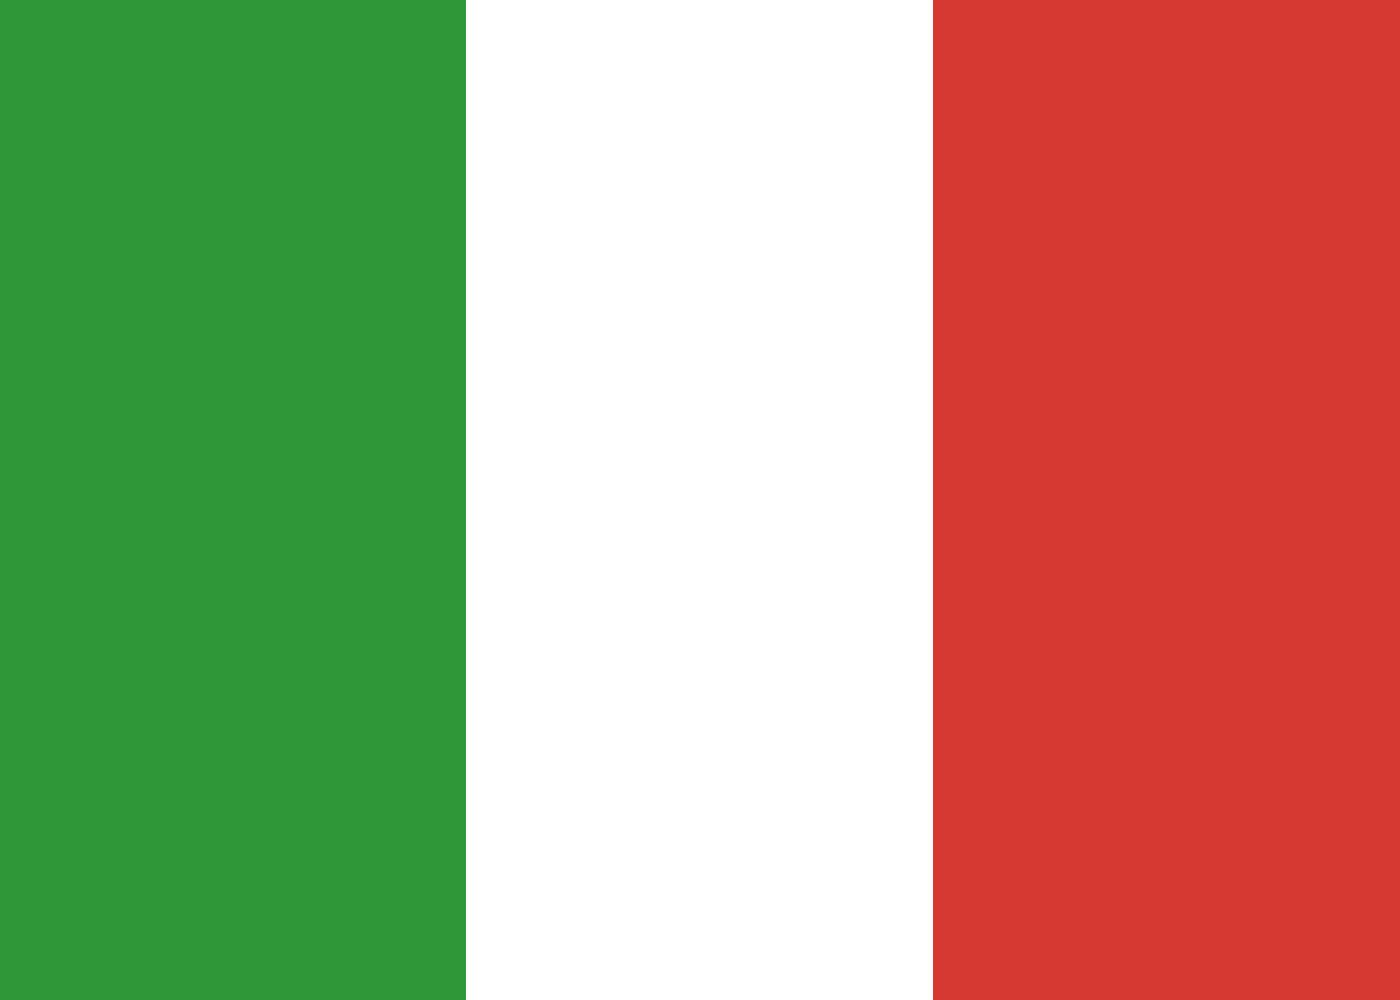 Italian Flag Wallpaper For Android | Galleryimage.co